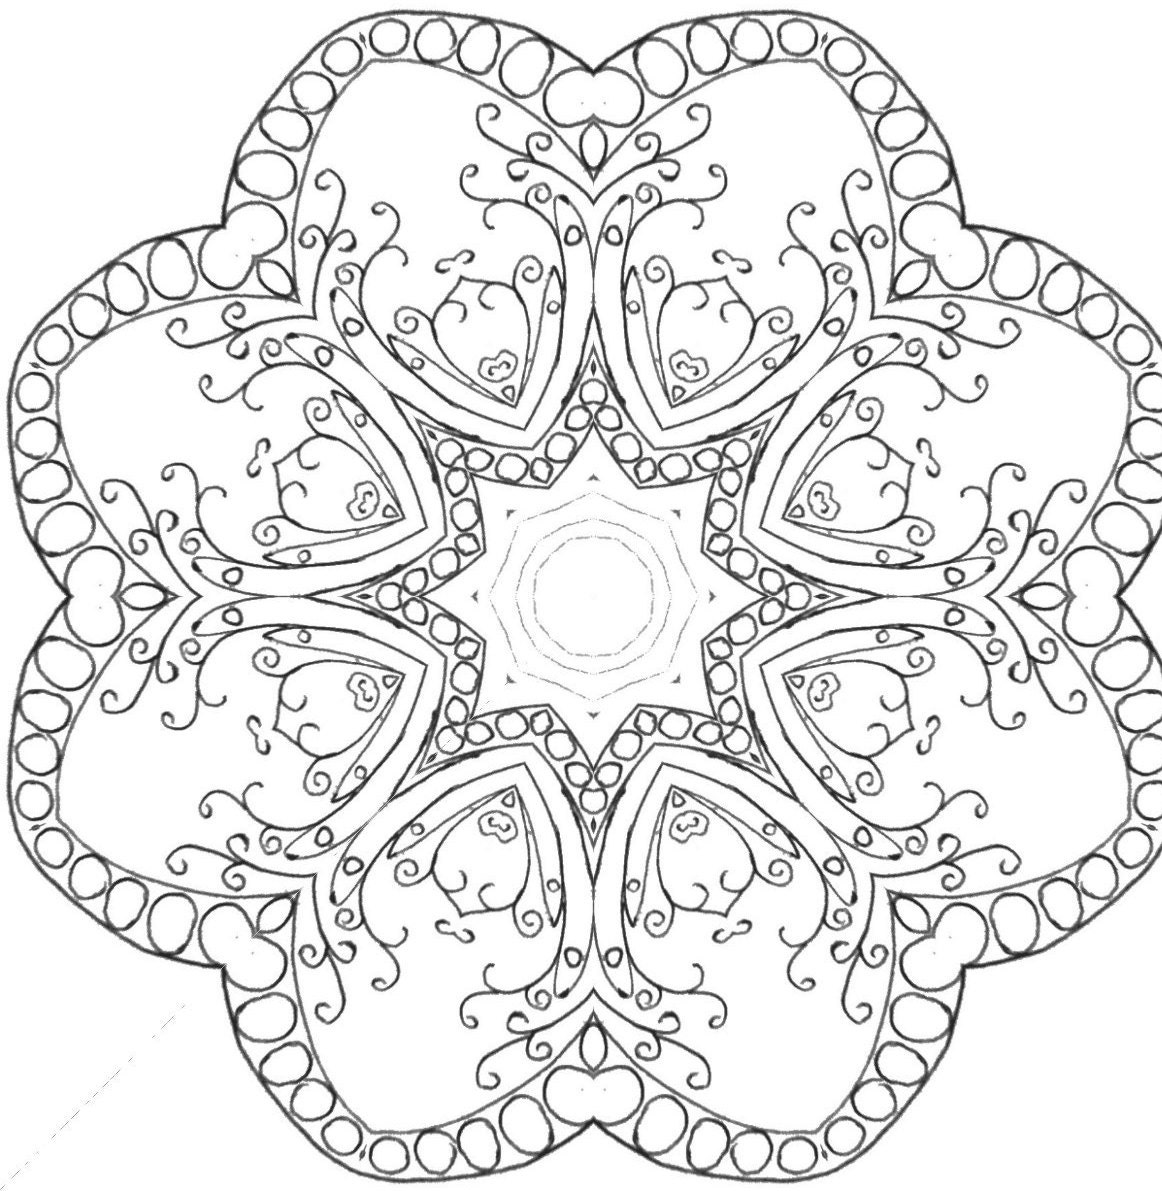 25 Coloring Pages including Mandalas Geometric Designs Rug   Etsy